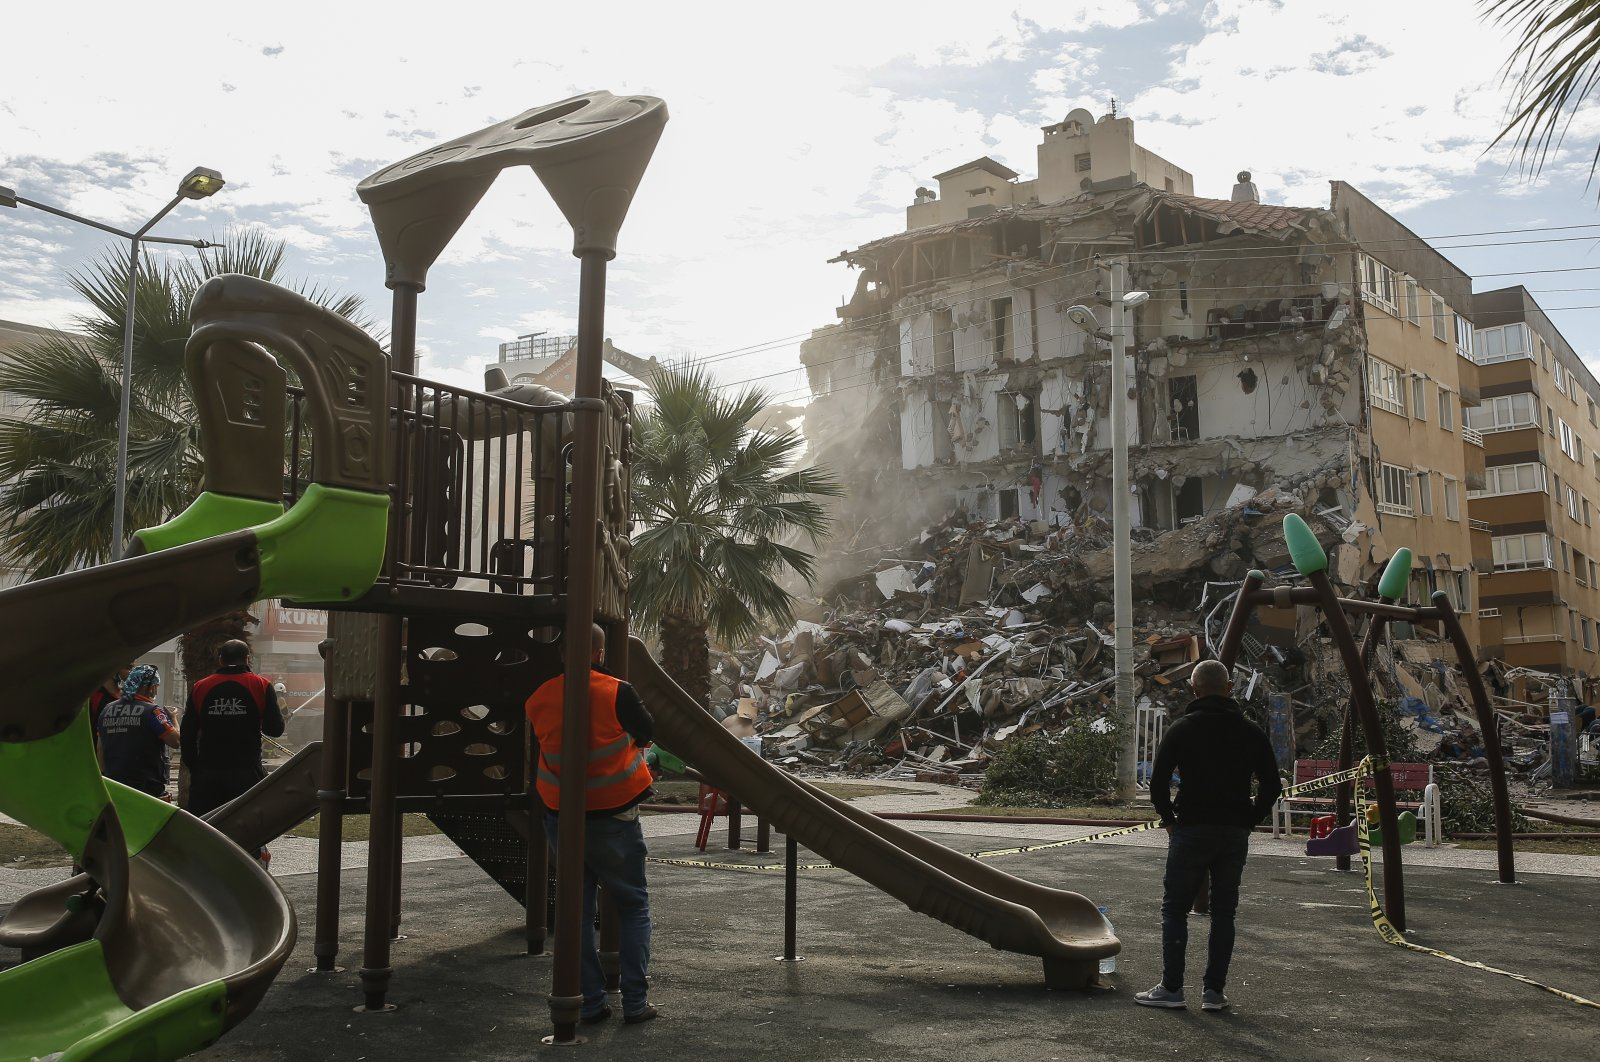 People inspect the debris of a collapsed building from a nearby playground after the earthquake in Izmir, Turkey, Nov. 2, 2020. (AP Photo)